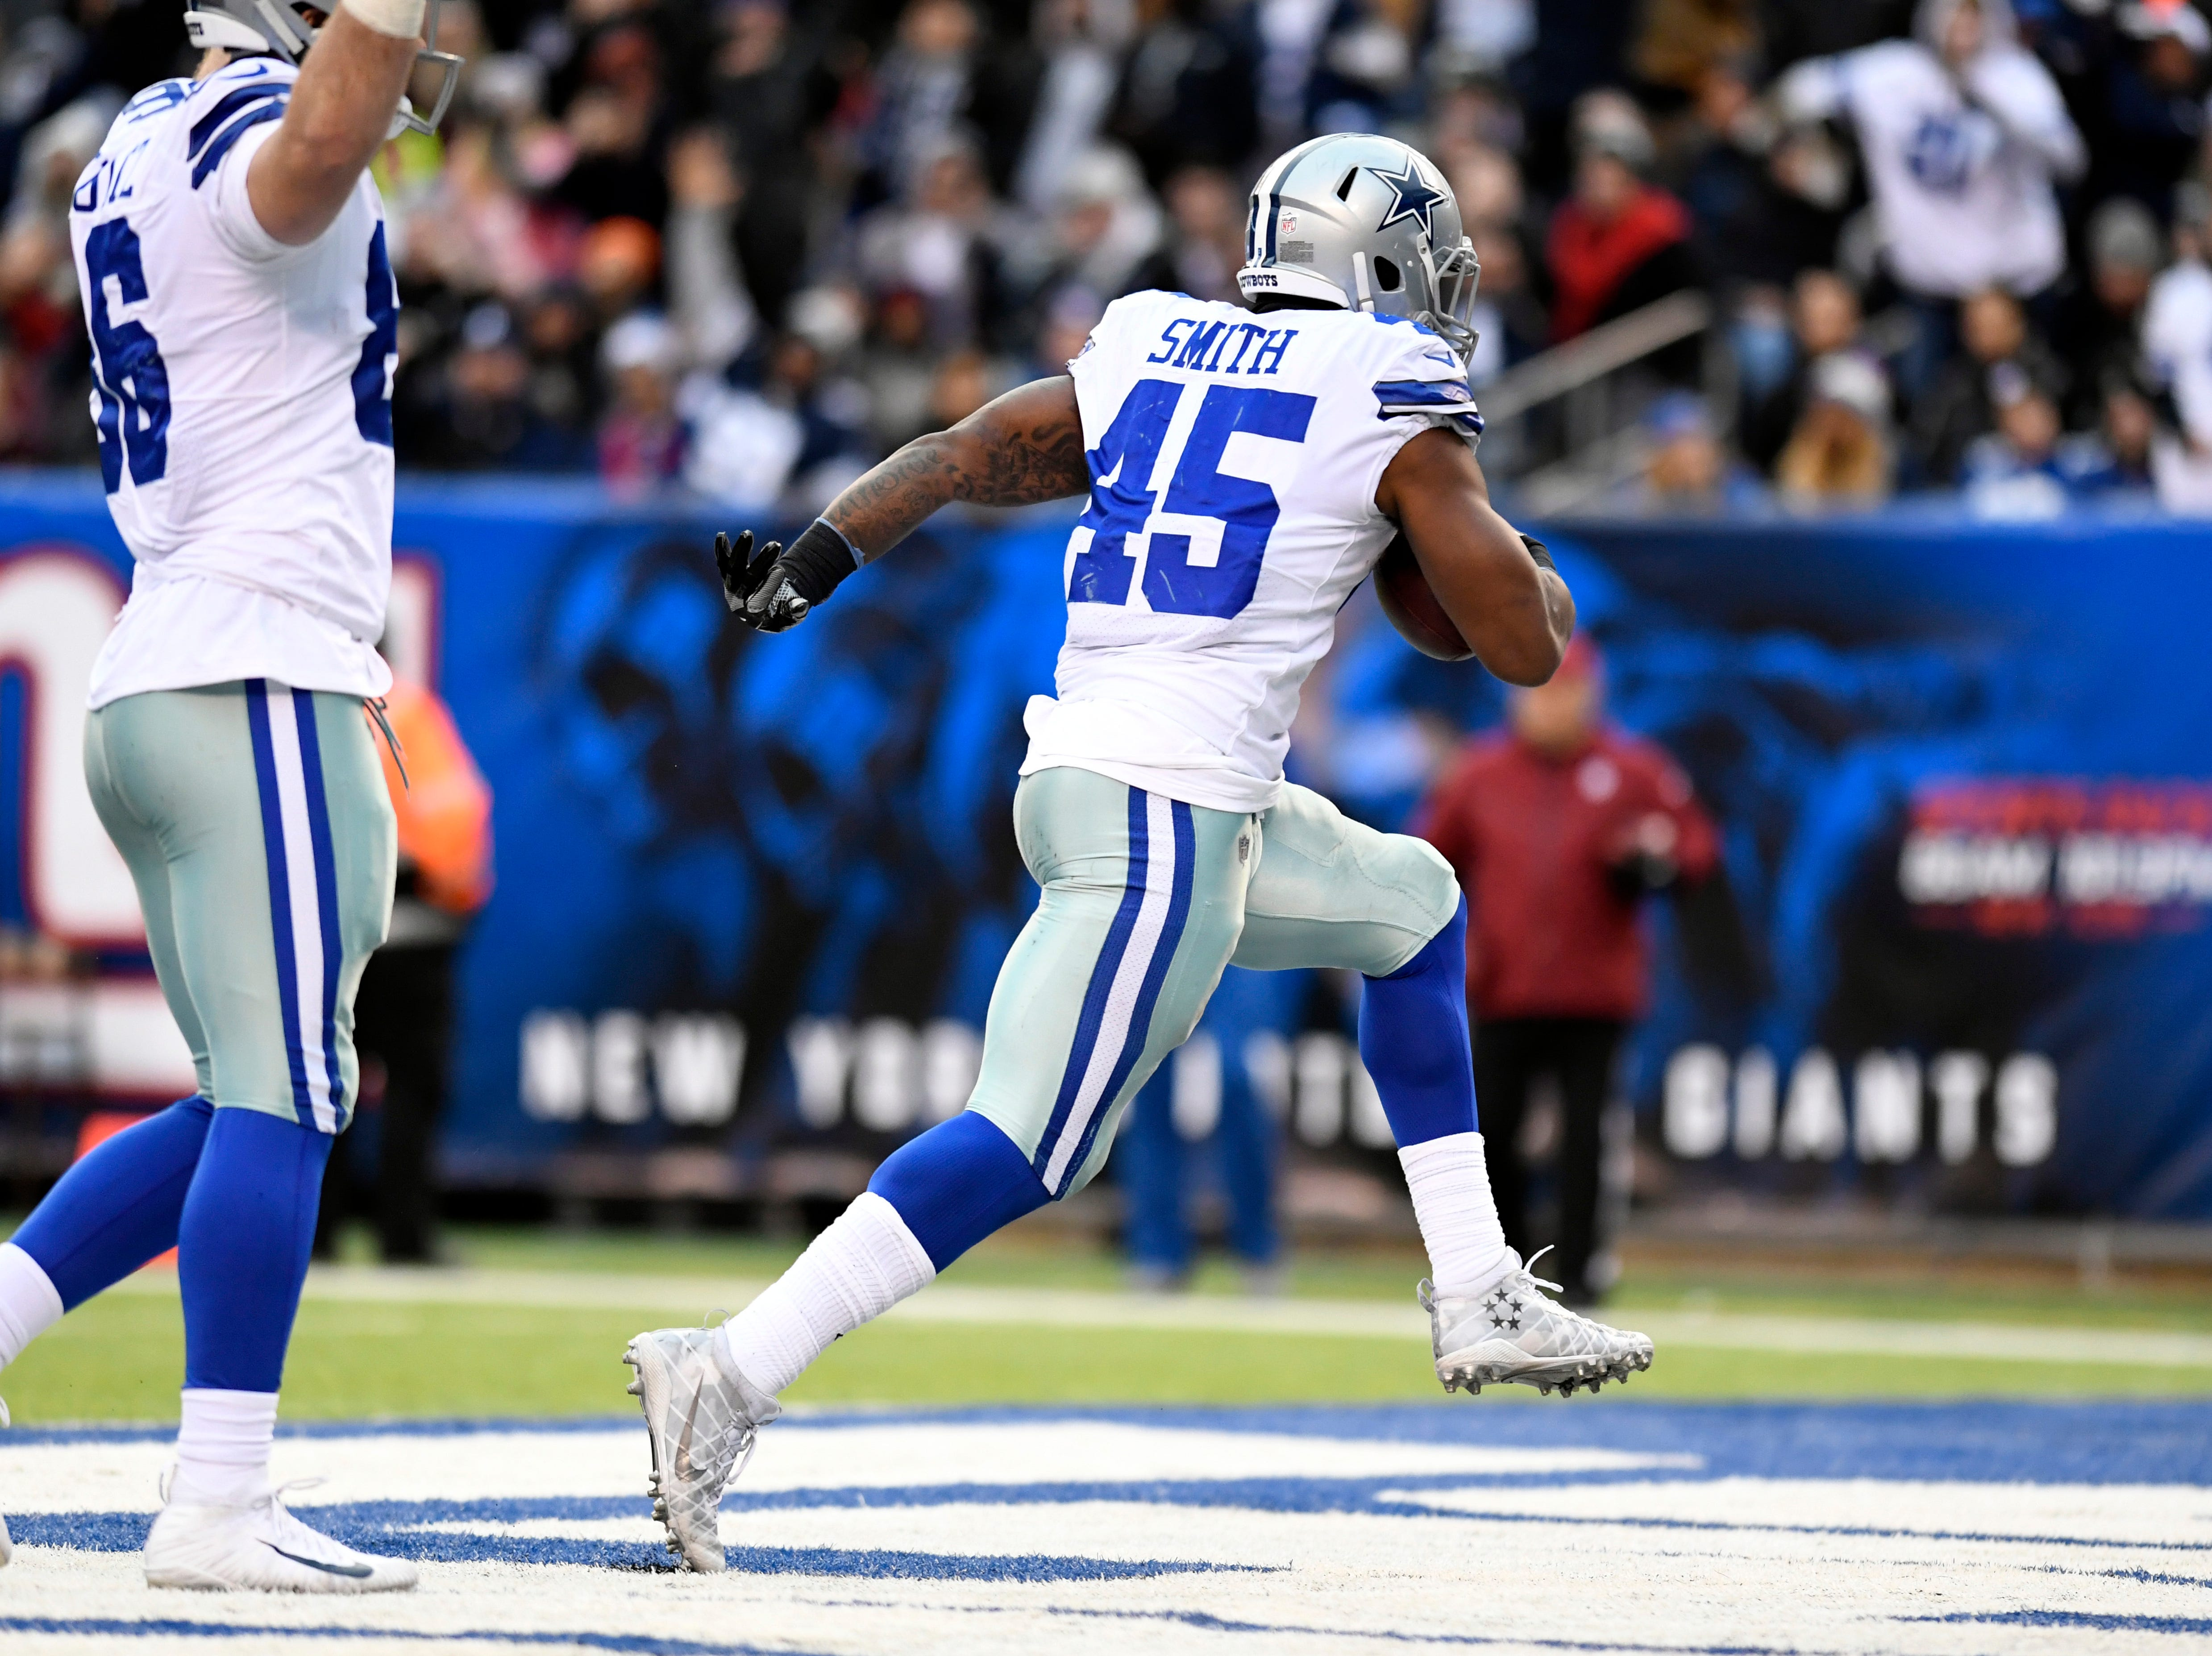 Dallas Cowboys running back Rod Smith (45) scores on a one-yard-run in the fourth quarter. The New York Giants lose to the Dallas Cowboys 36-35 on Sunday, Dec. 30, 2018, in East Rutherford.